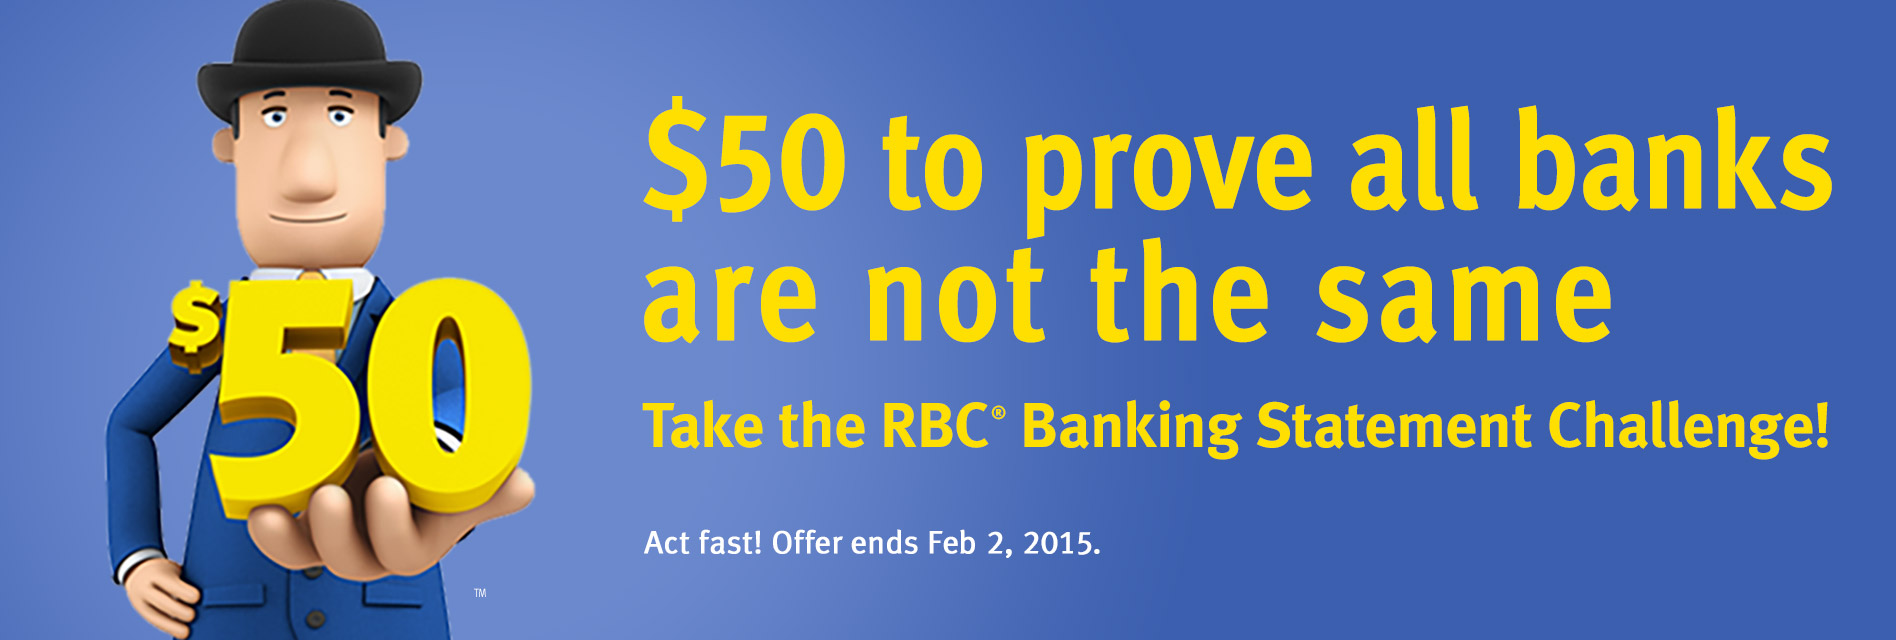 rbc banking statement